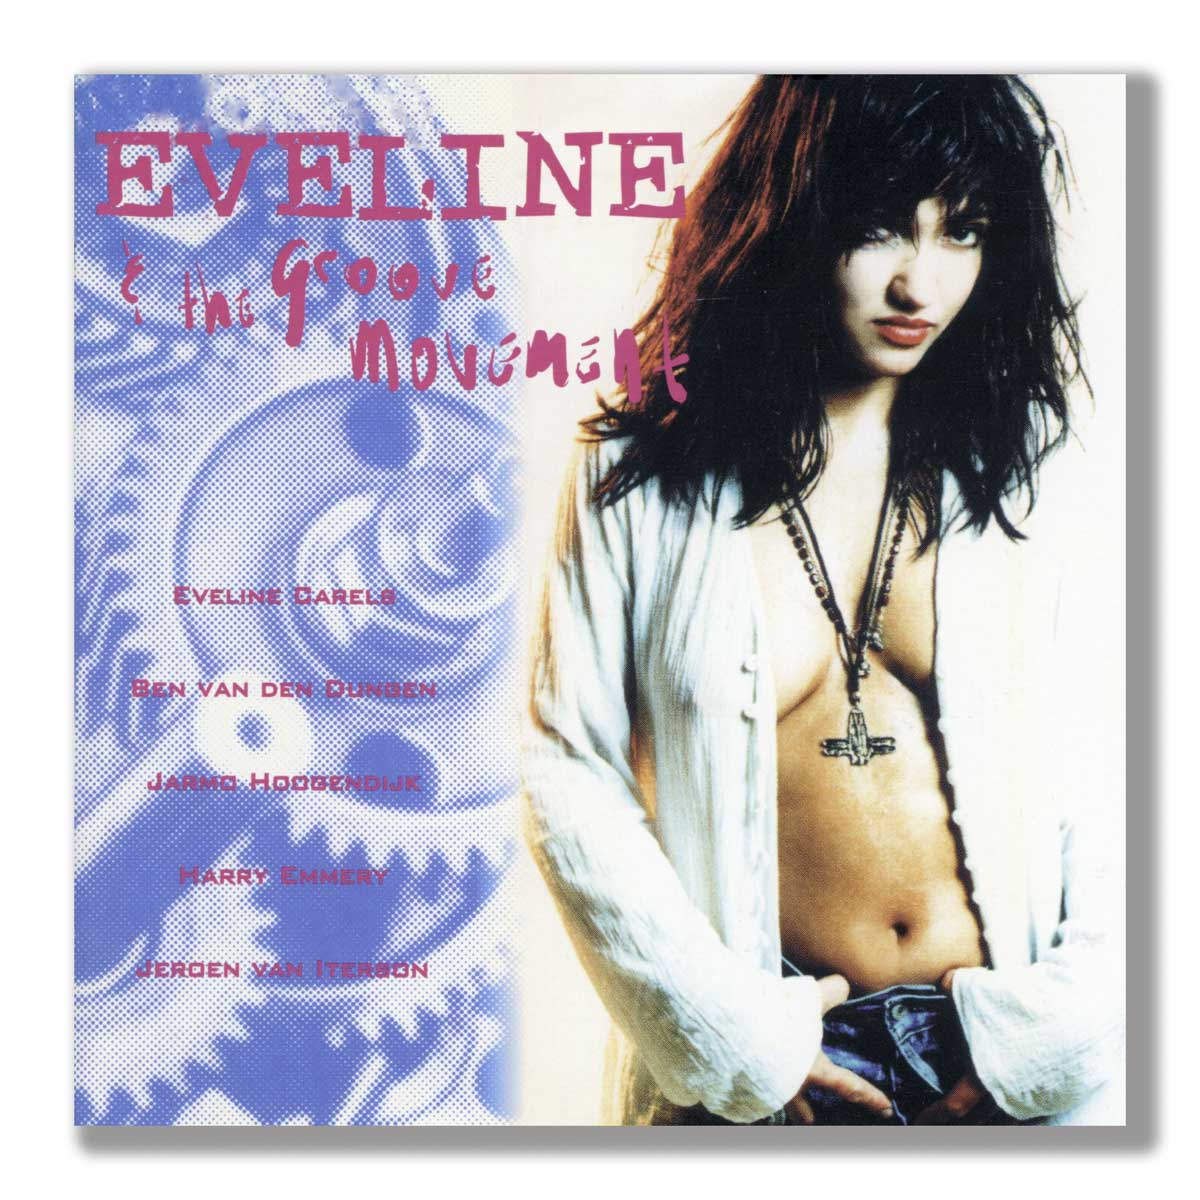 EVELINE & THE GROOVE MOVEMENT (1994)